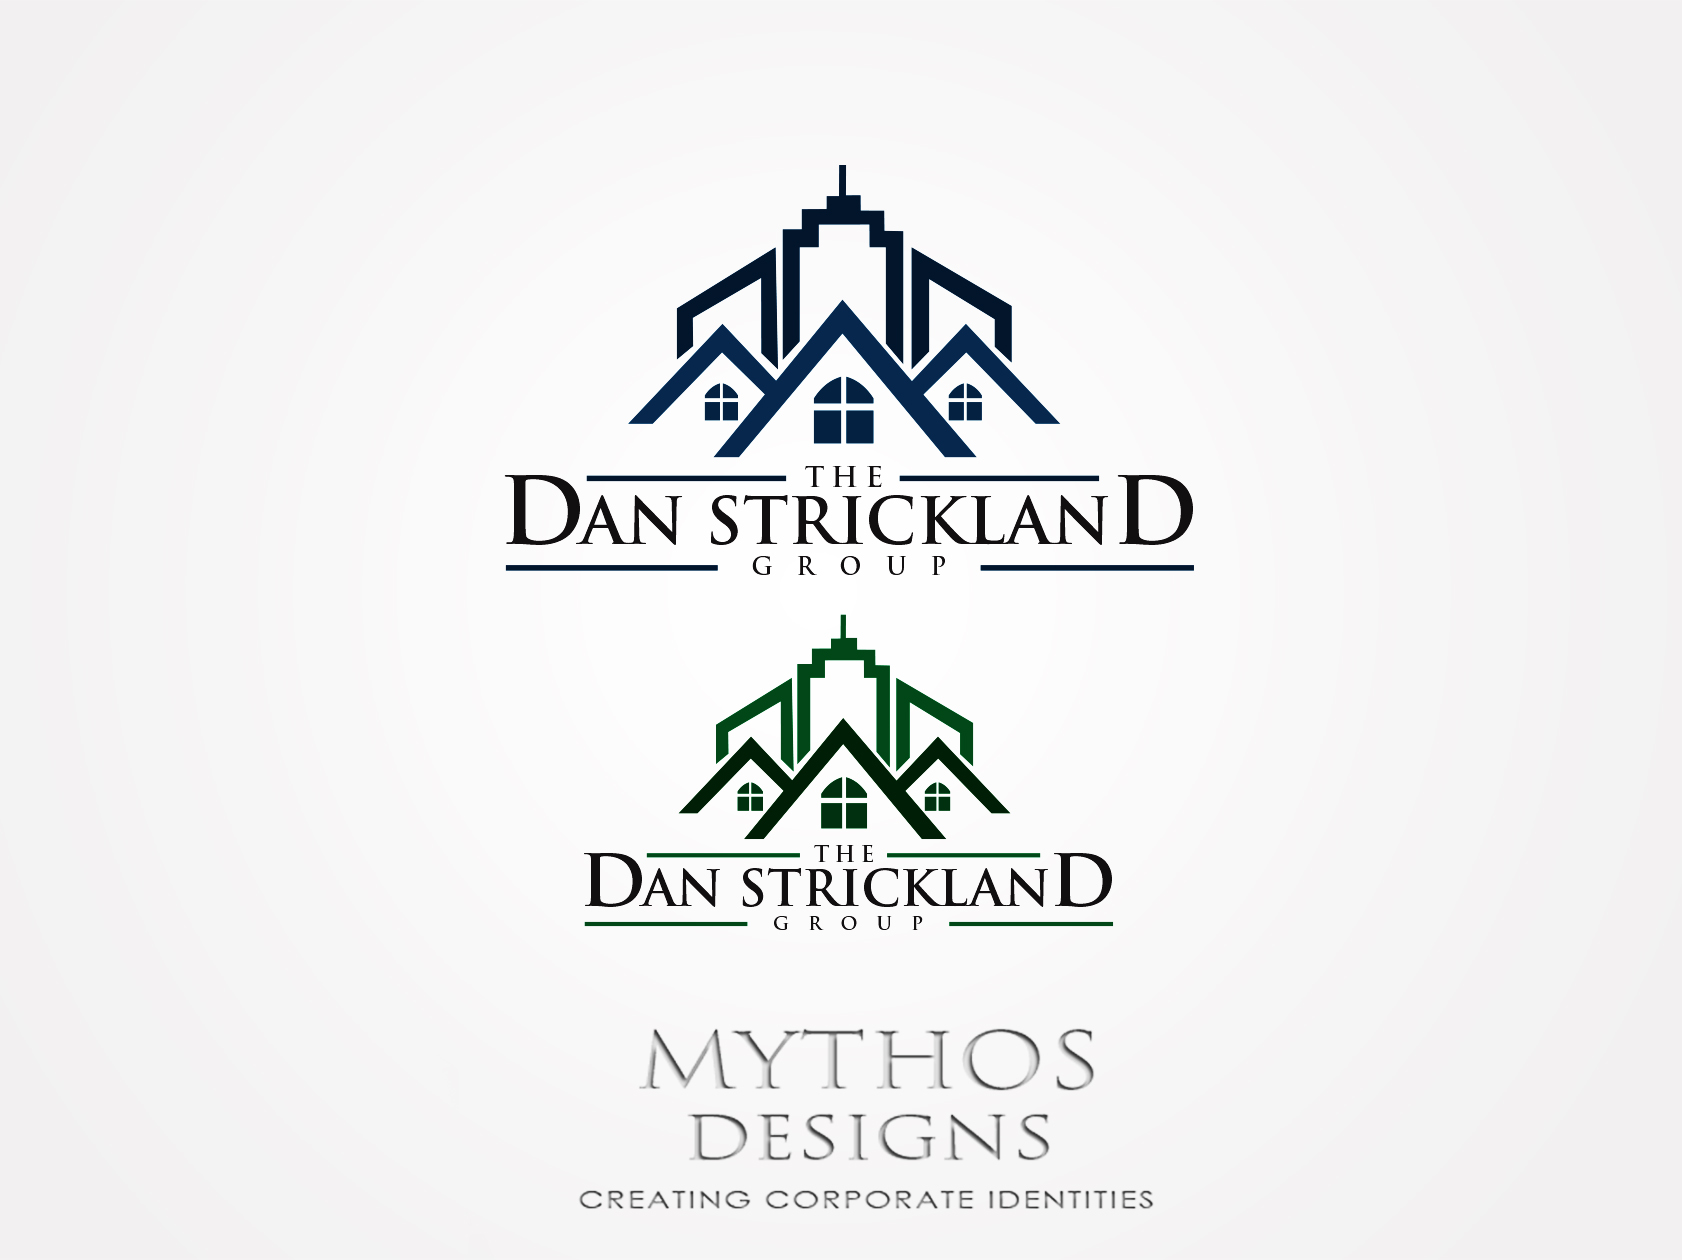 Logo Design by Mythos Designs - Entry No. 288 in the Logo Design Contest Creative Logo Design for The Dan Strickland Group.